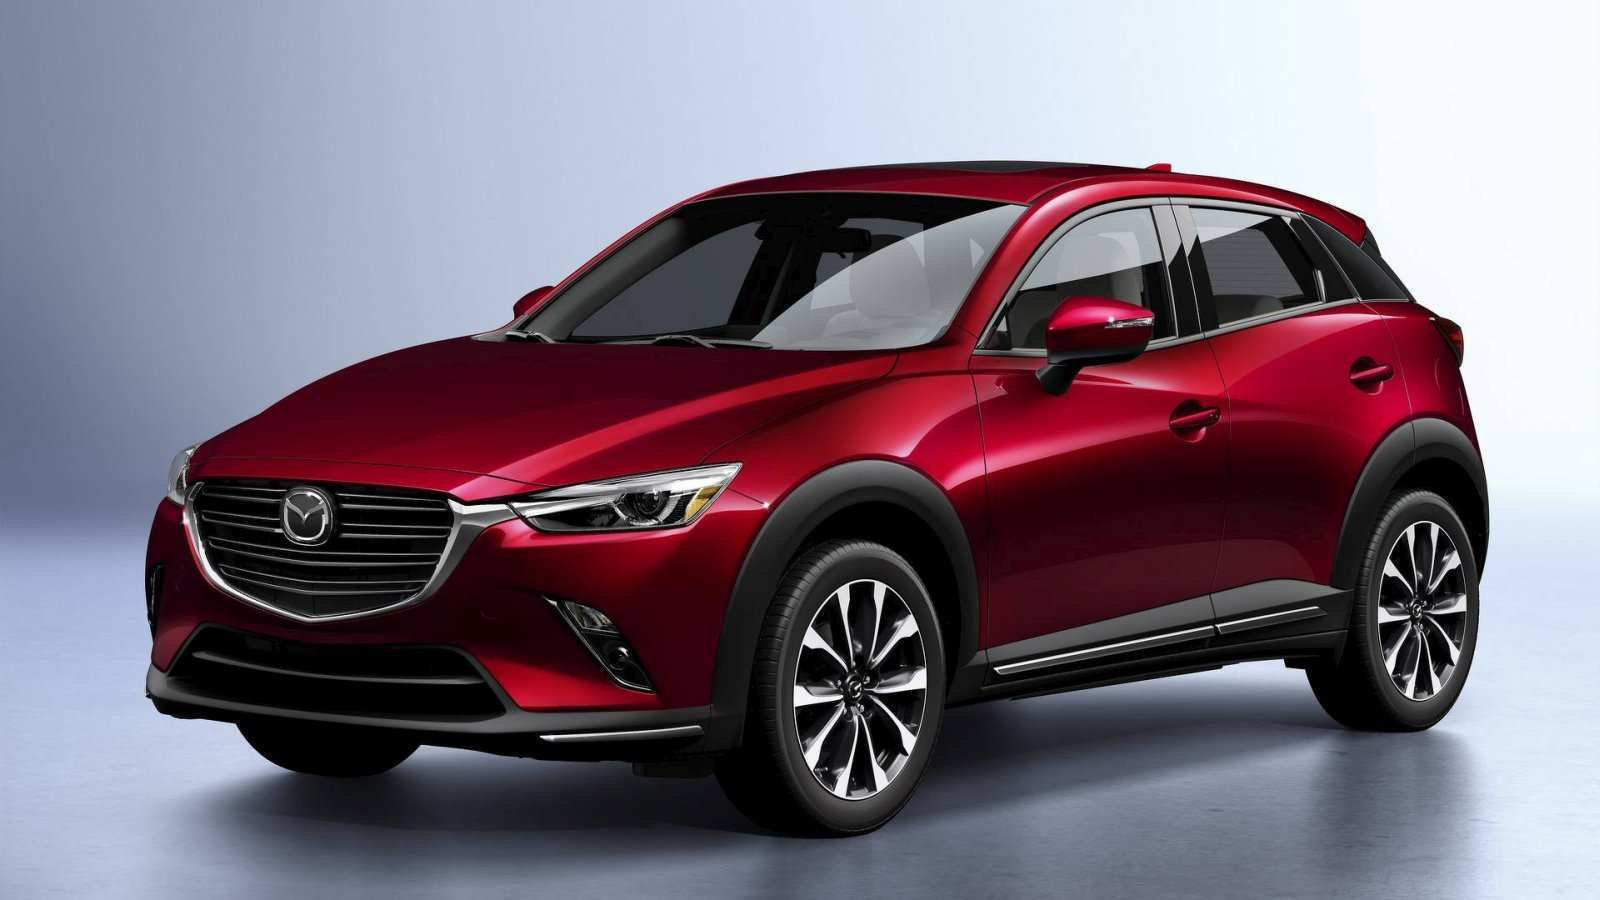 35 New 2019 Mazda Cx 3 Images